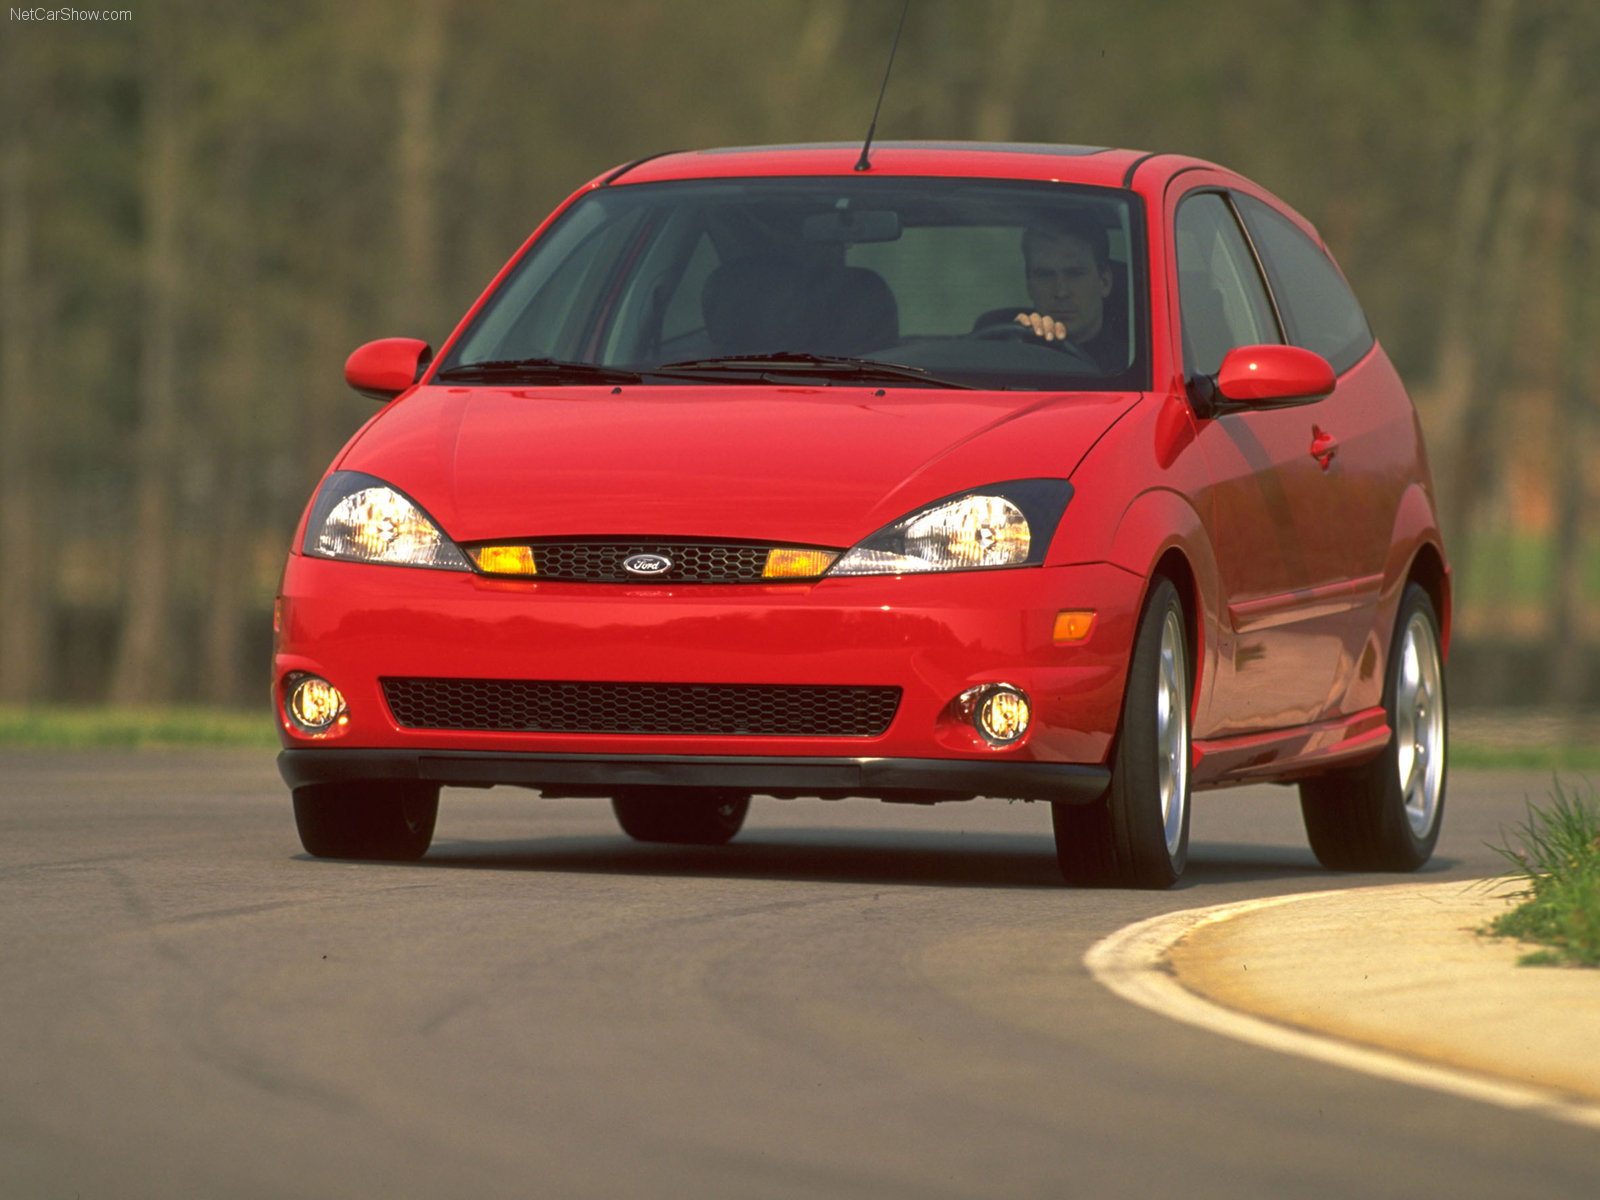 Ford SVT Focus 3 Door Hatchback 2003